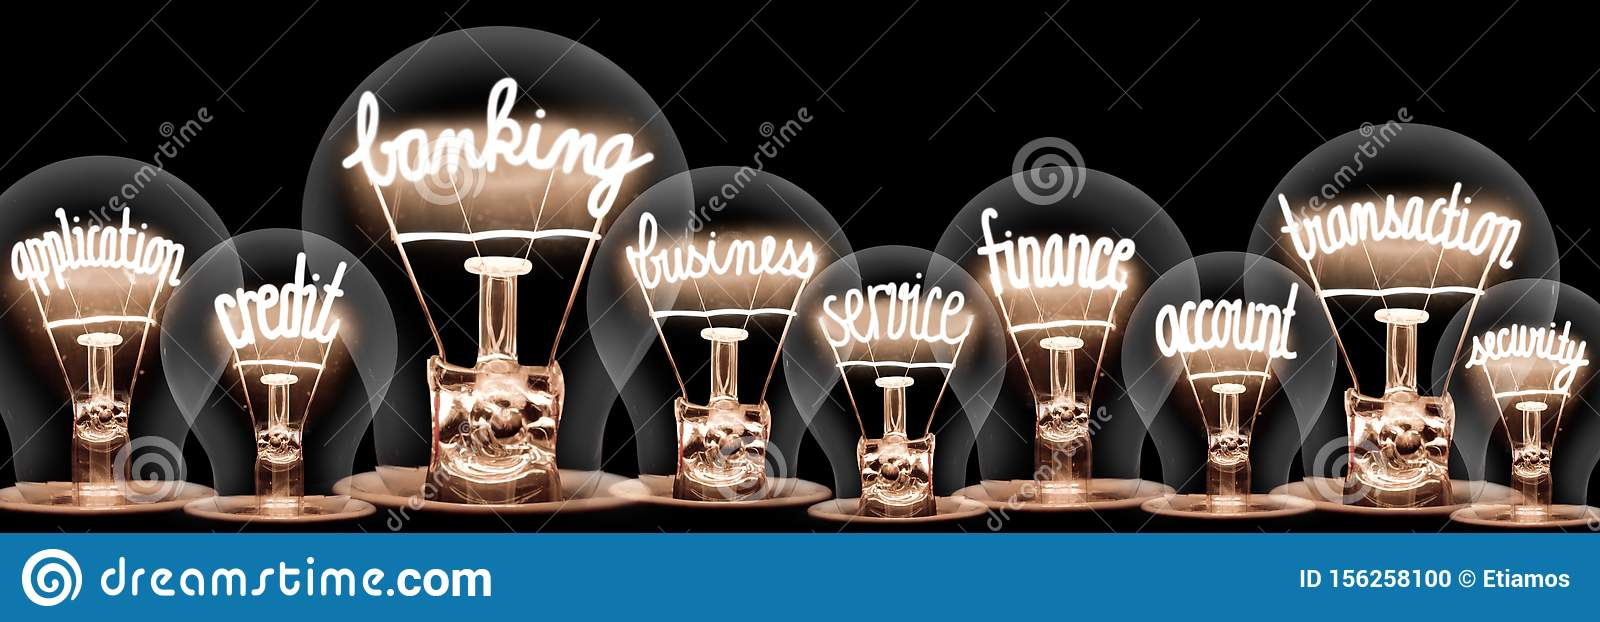 Light Bulbs with Banking Concept